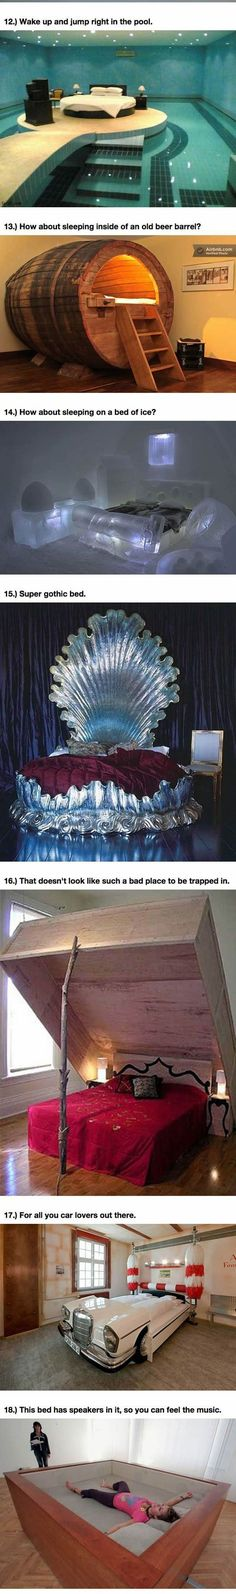 Funny pictures about 25 Amazing Beds Will Make You Wish It Was Nap Time. Oh, and cool pics about 25 Amazing Beds Will Make You Wish It Was Nap Time. Also, 25 Amazing Beds Will Make You Wish It Was Nap Time photos.